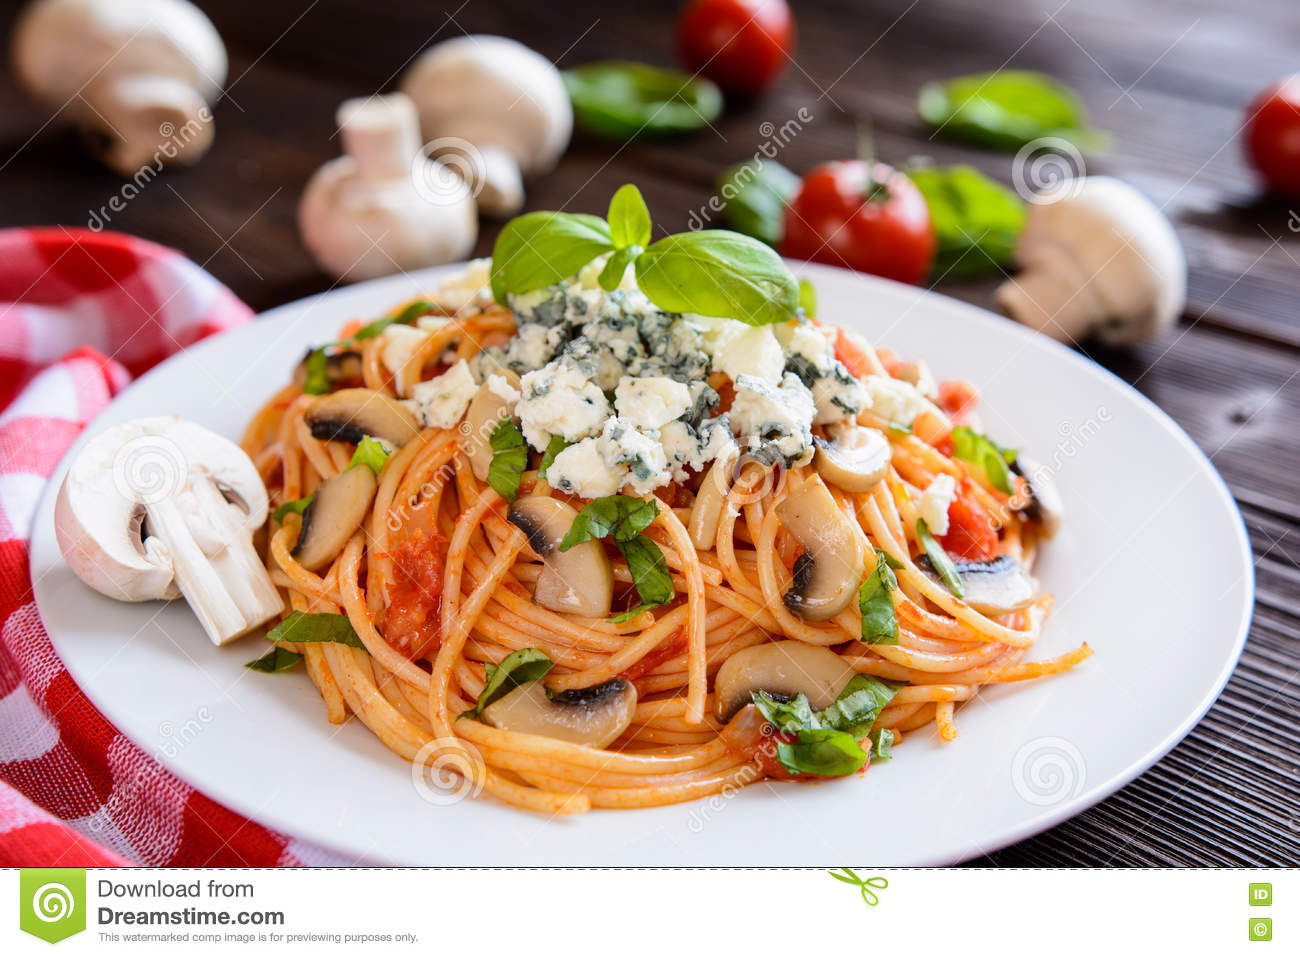 Spaghetti Pasta Salad With Tomato Sauce, Mushrooms, Blue ...